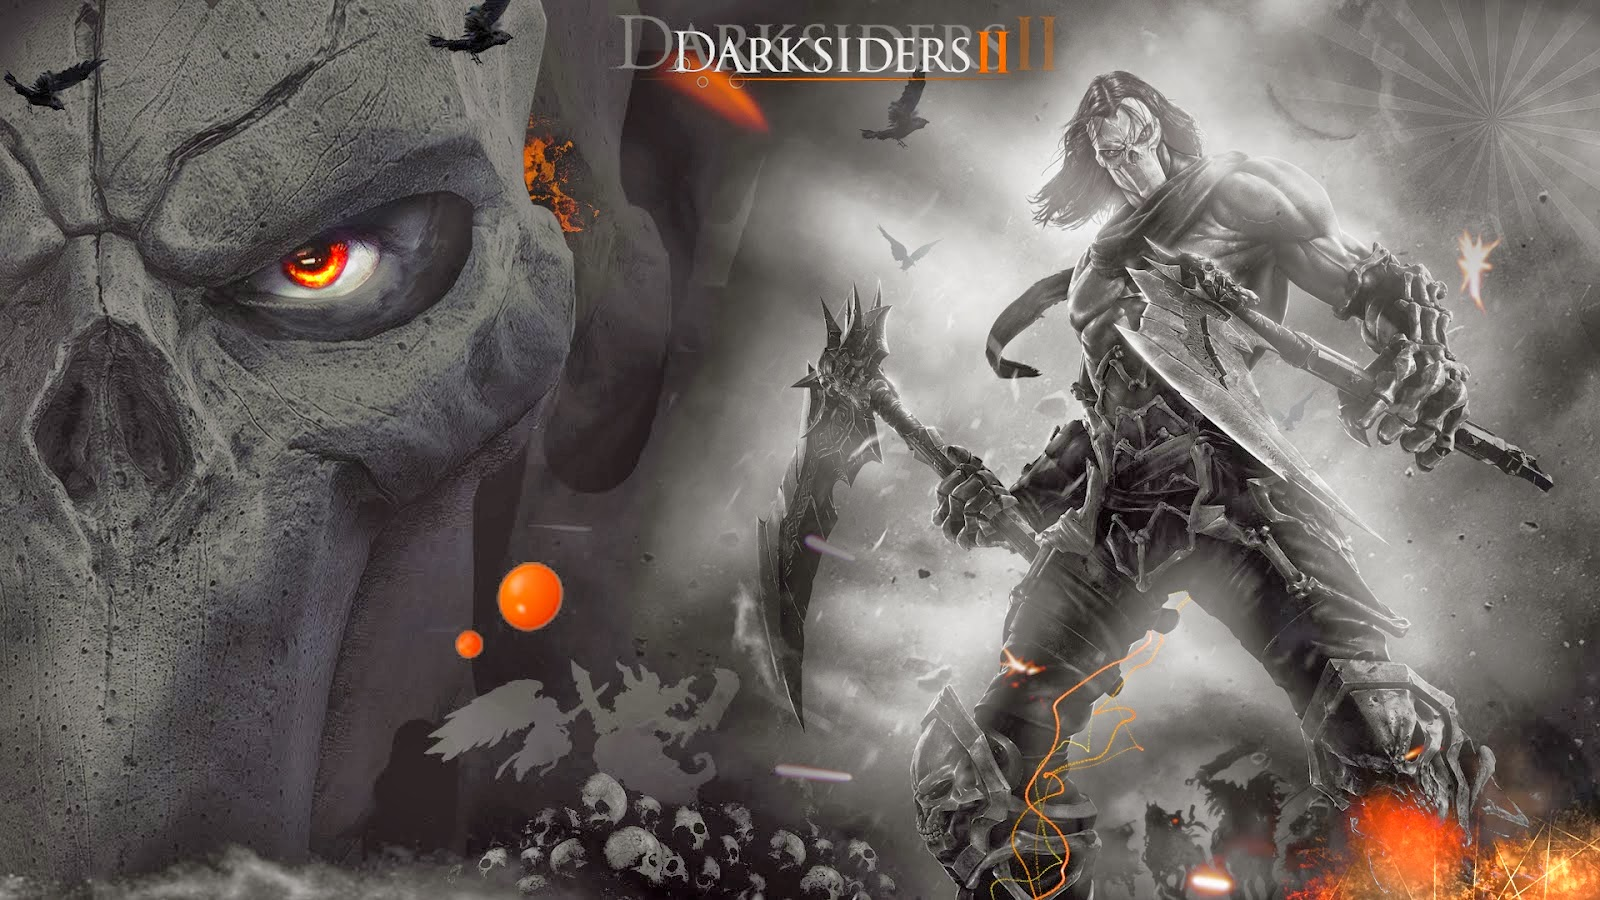 Darksiders II HD Wallpapers  Blog